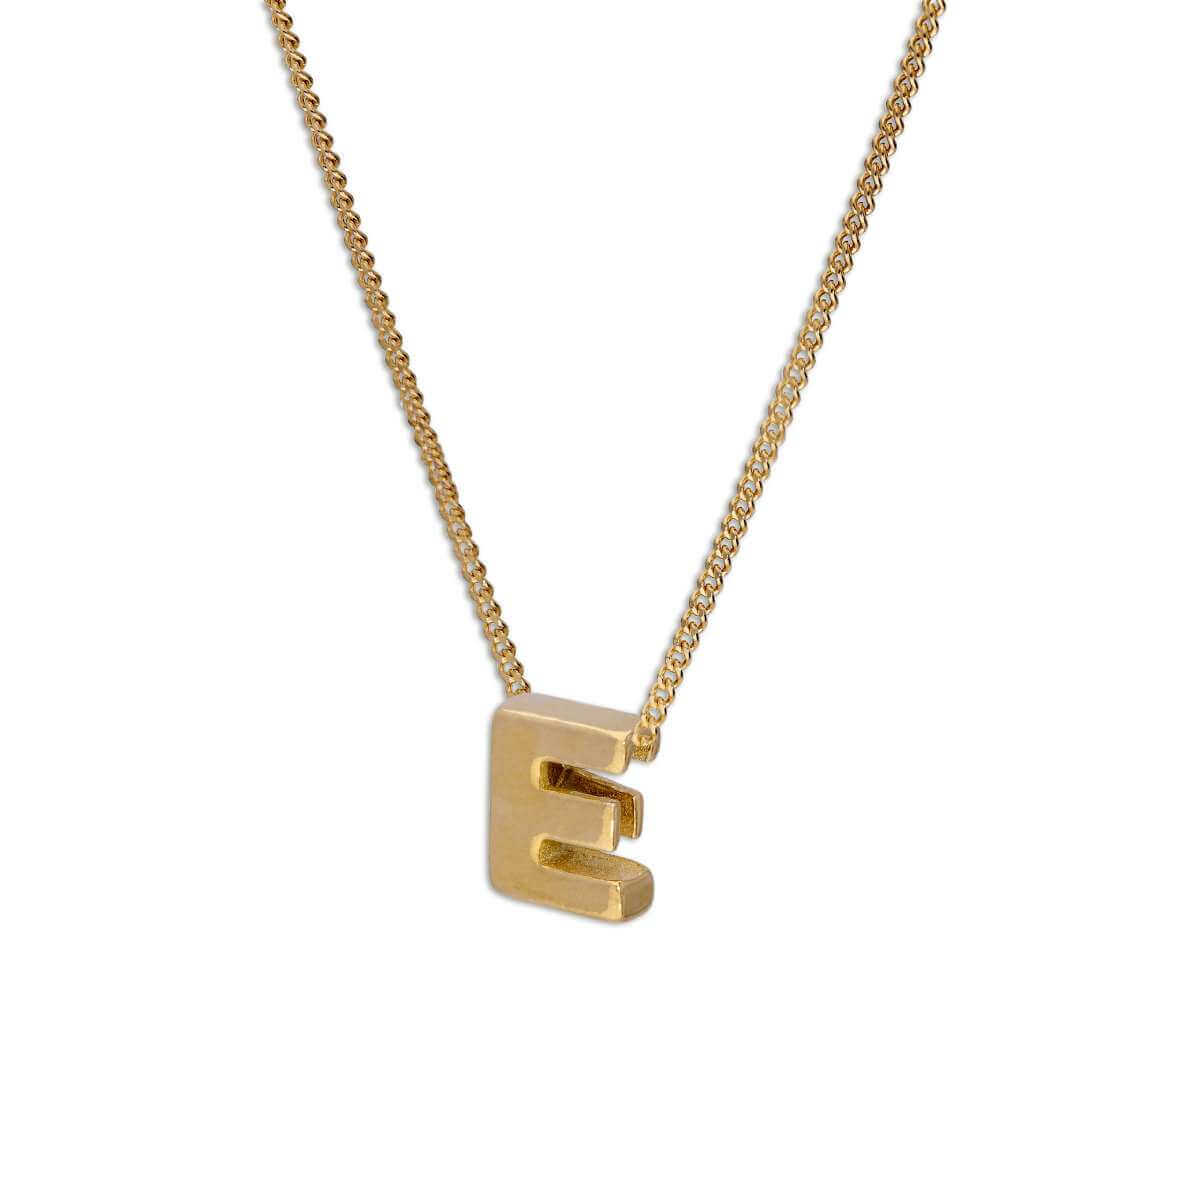 Gold Plated Sterling Silver Threader Letter E Bead Necklace 16 - 22 Inches